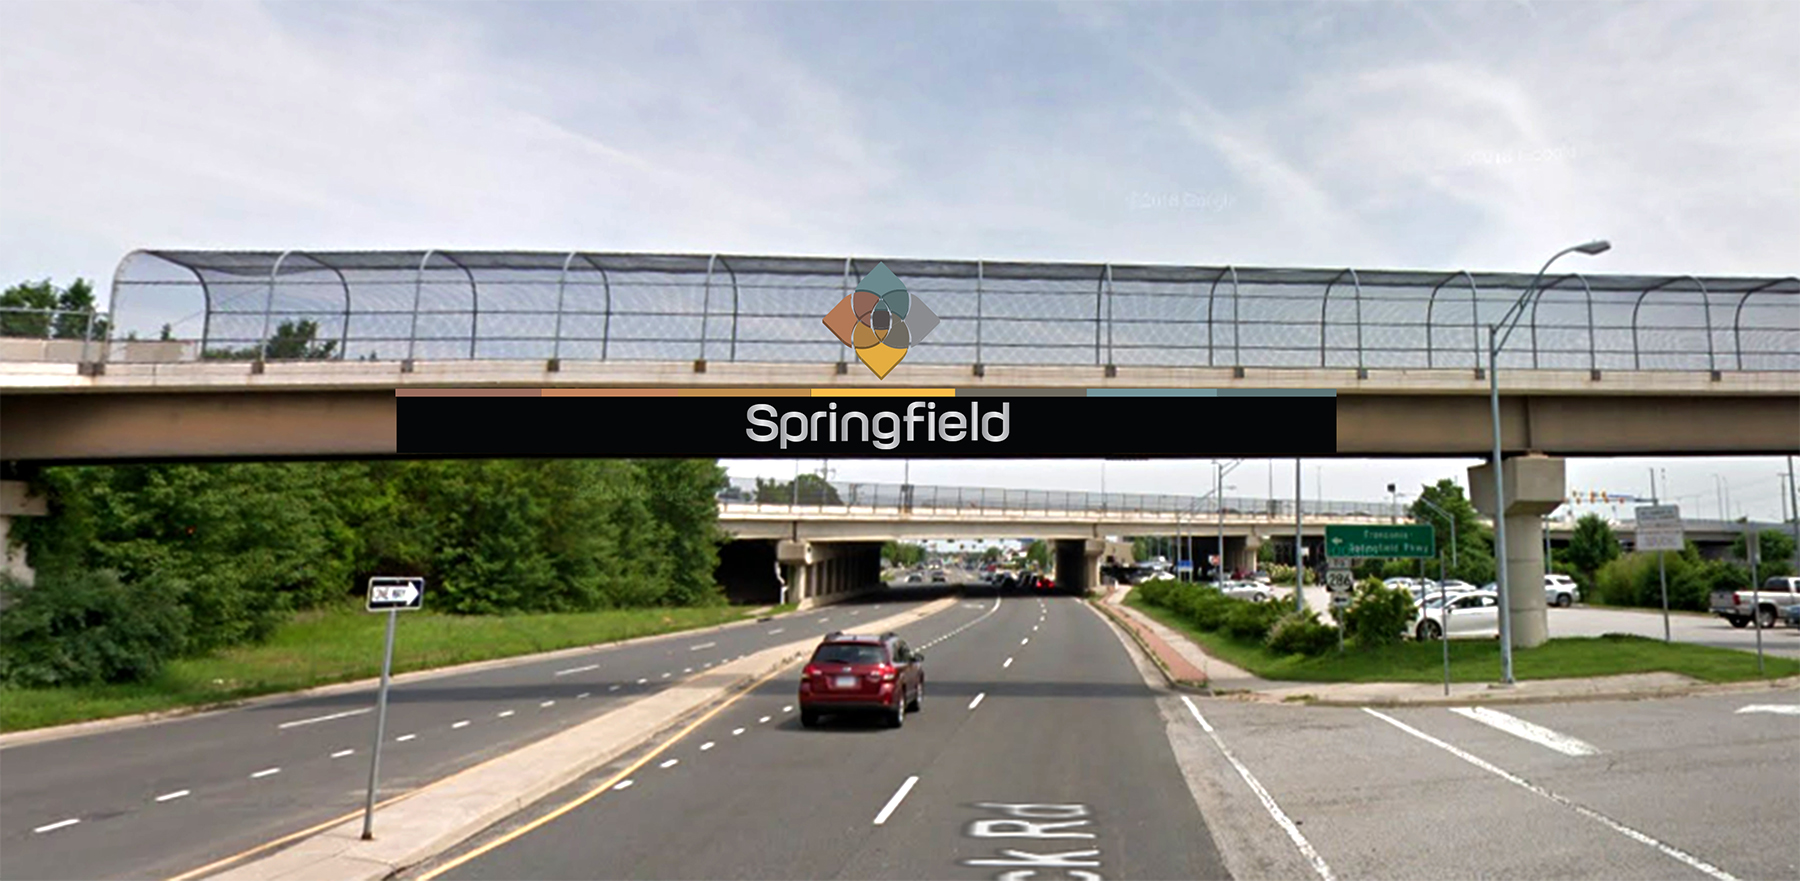 This overpass design is an example of the logo on the metal railing, color banding, and stainless steel text to pop on the black background.